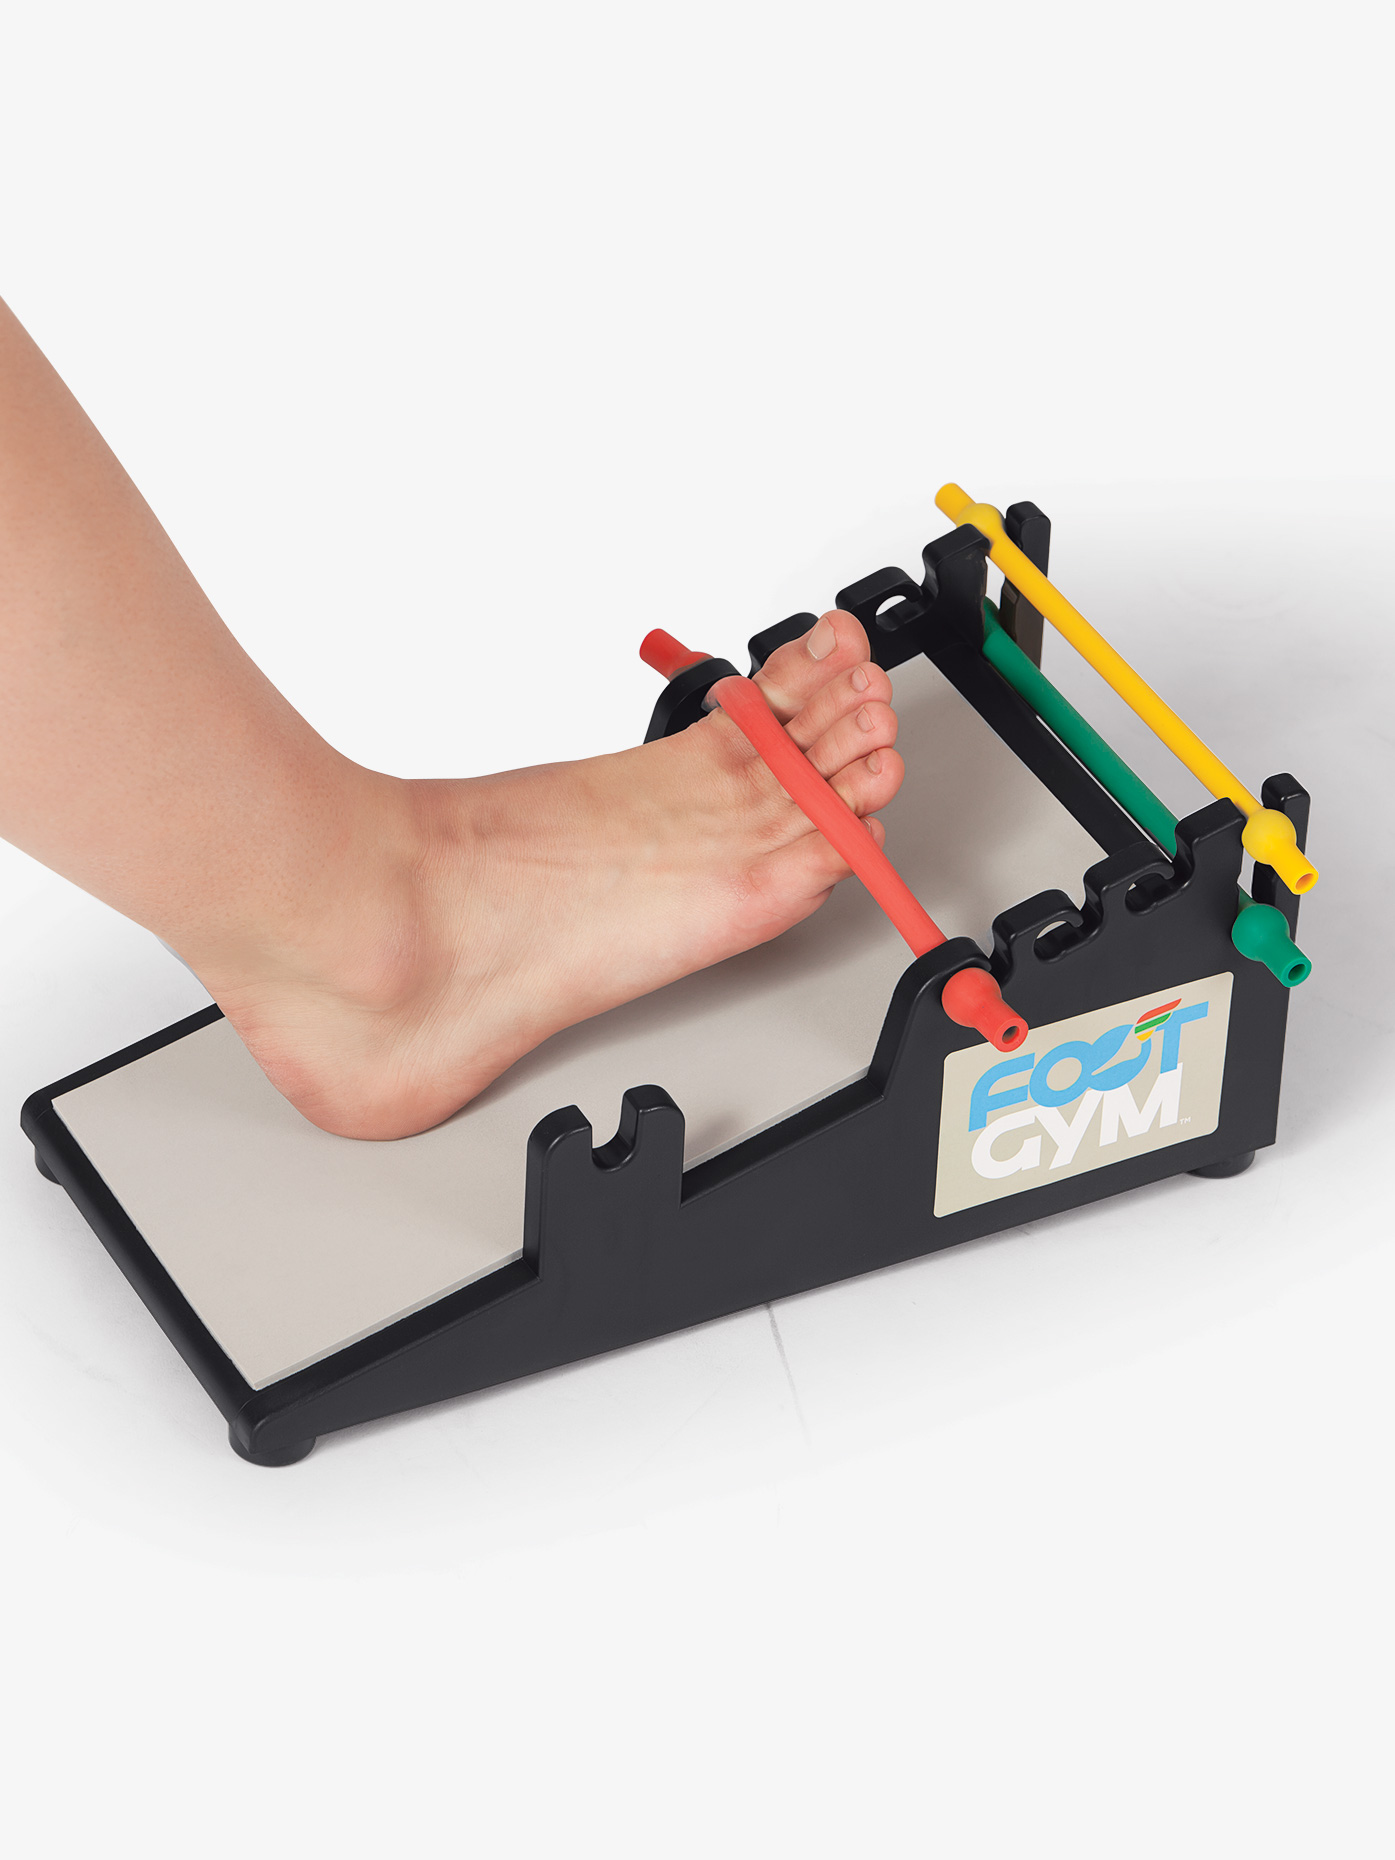 FootGym 7-in-1 Foot Gym